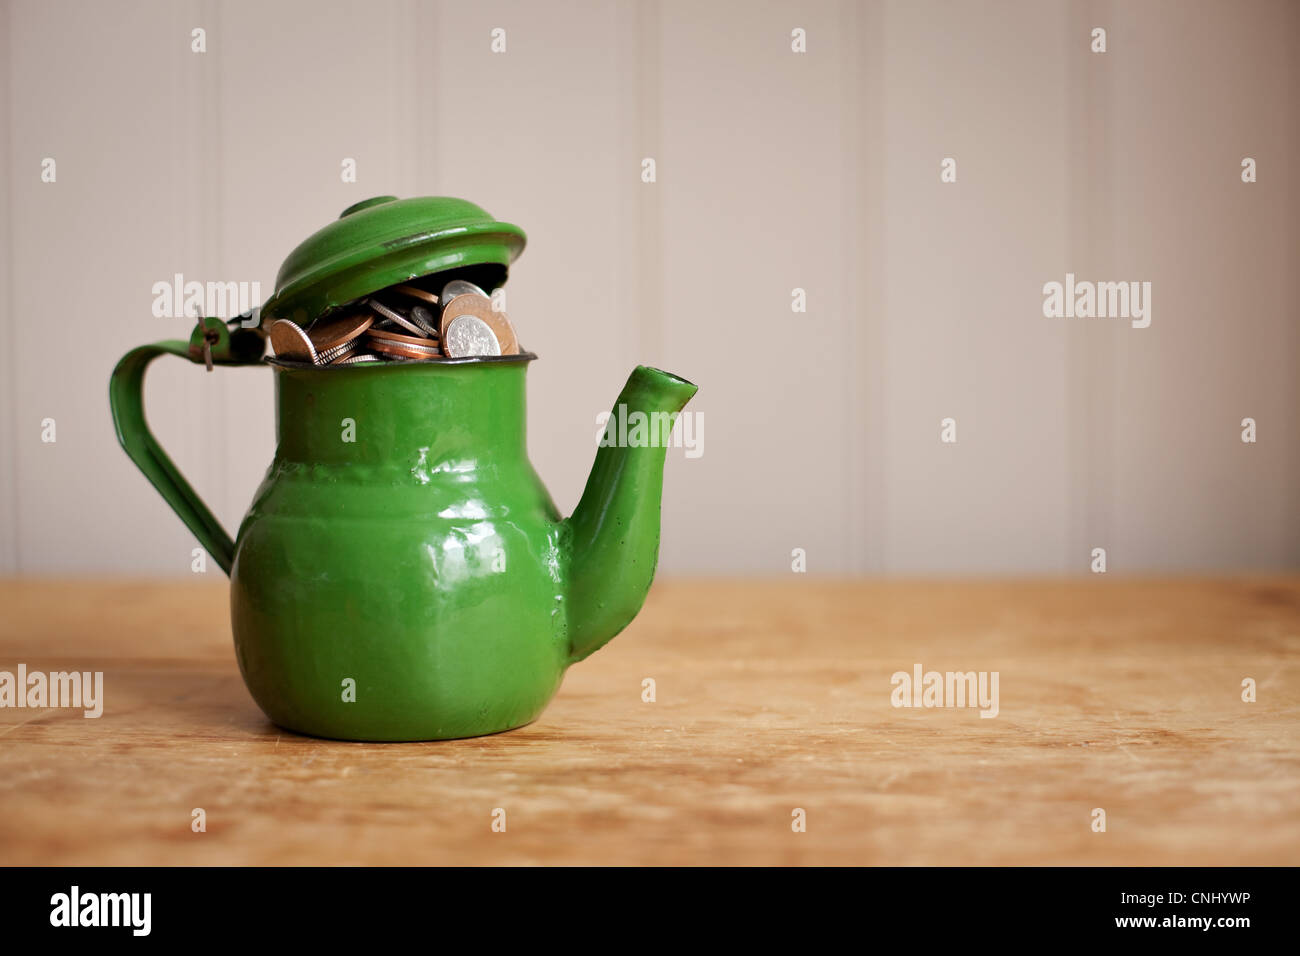 Money in a teapot - Stock Image